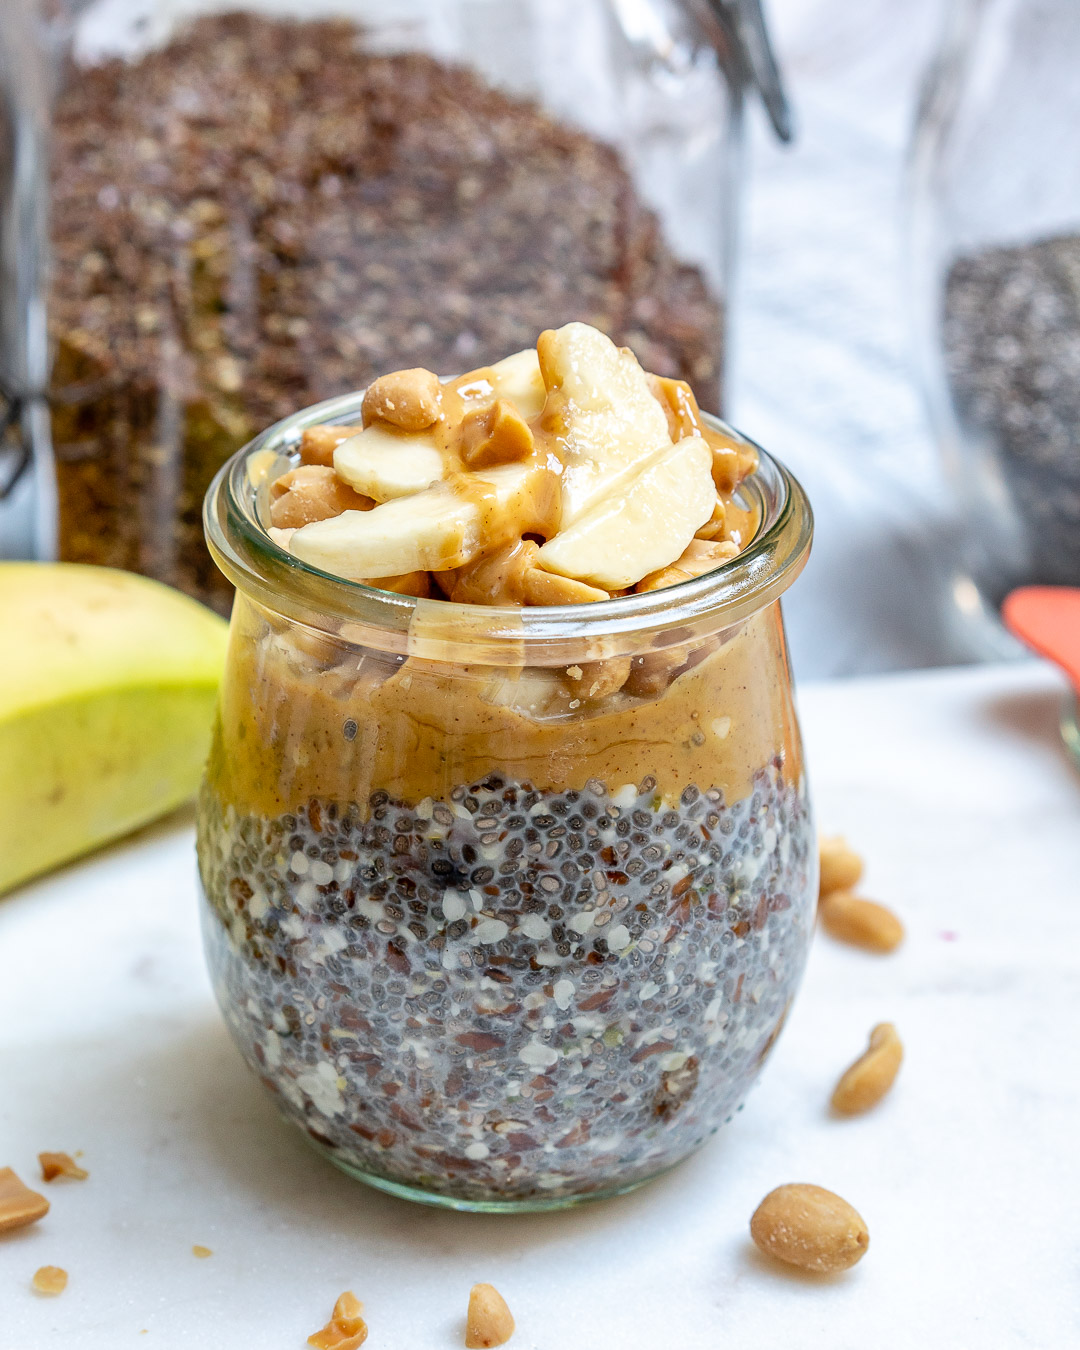 Peanut Butter Banana Overnight No-Oats